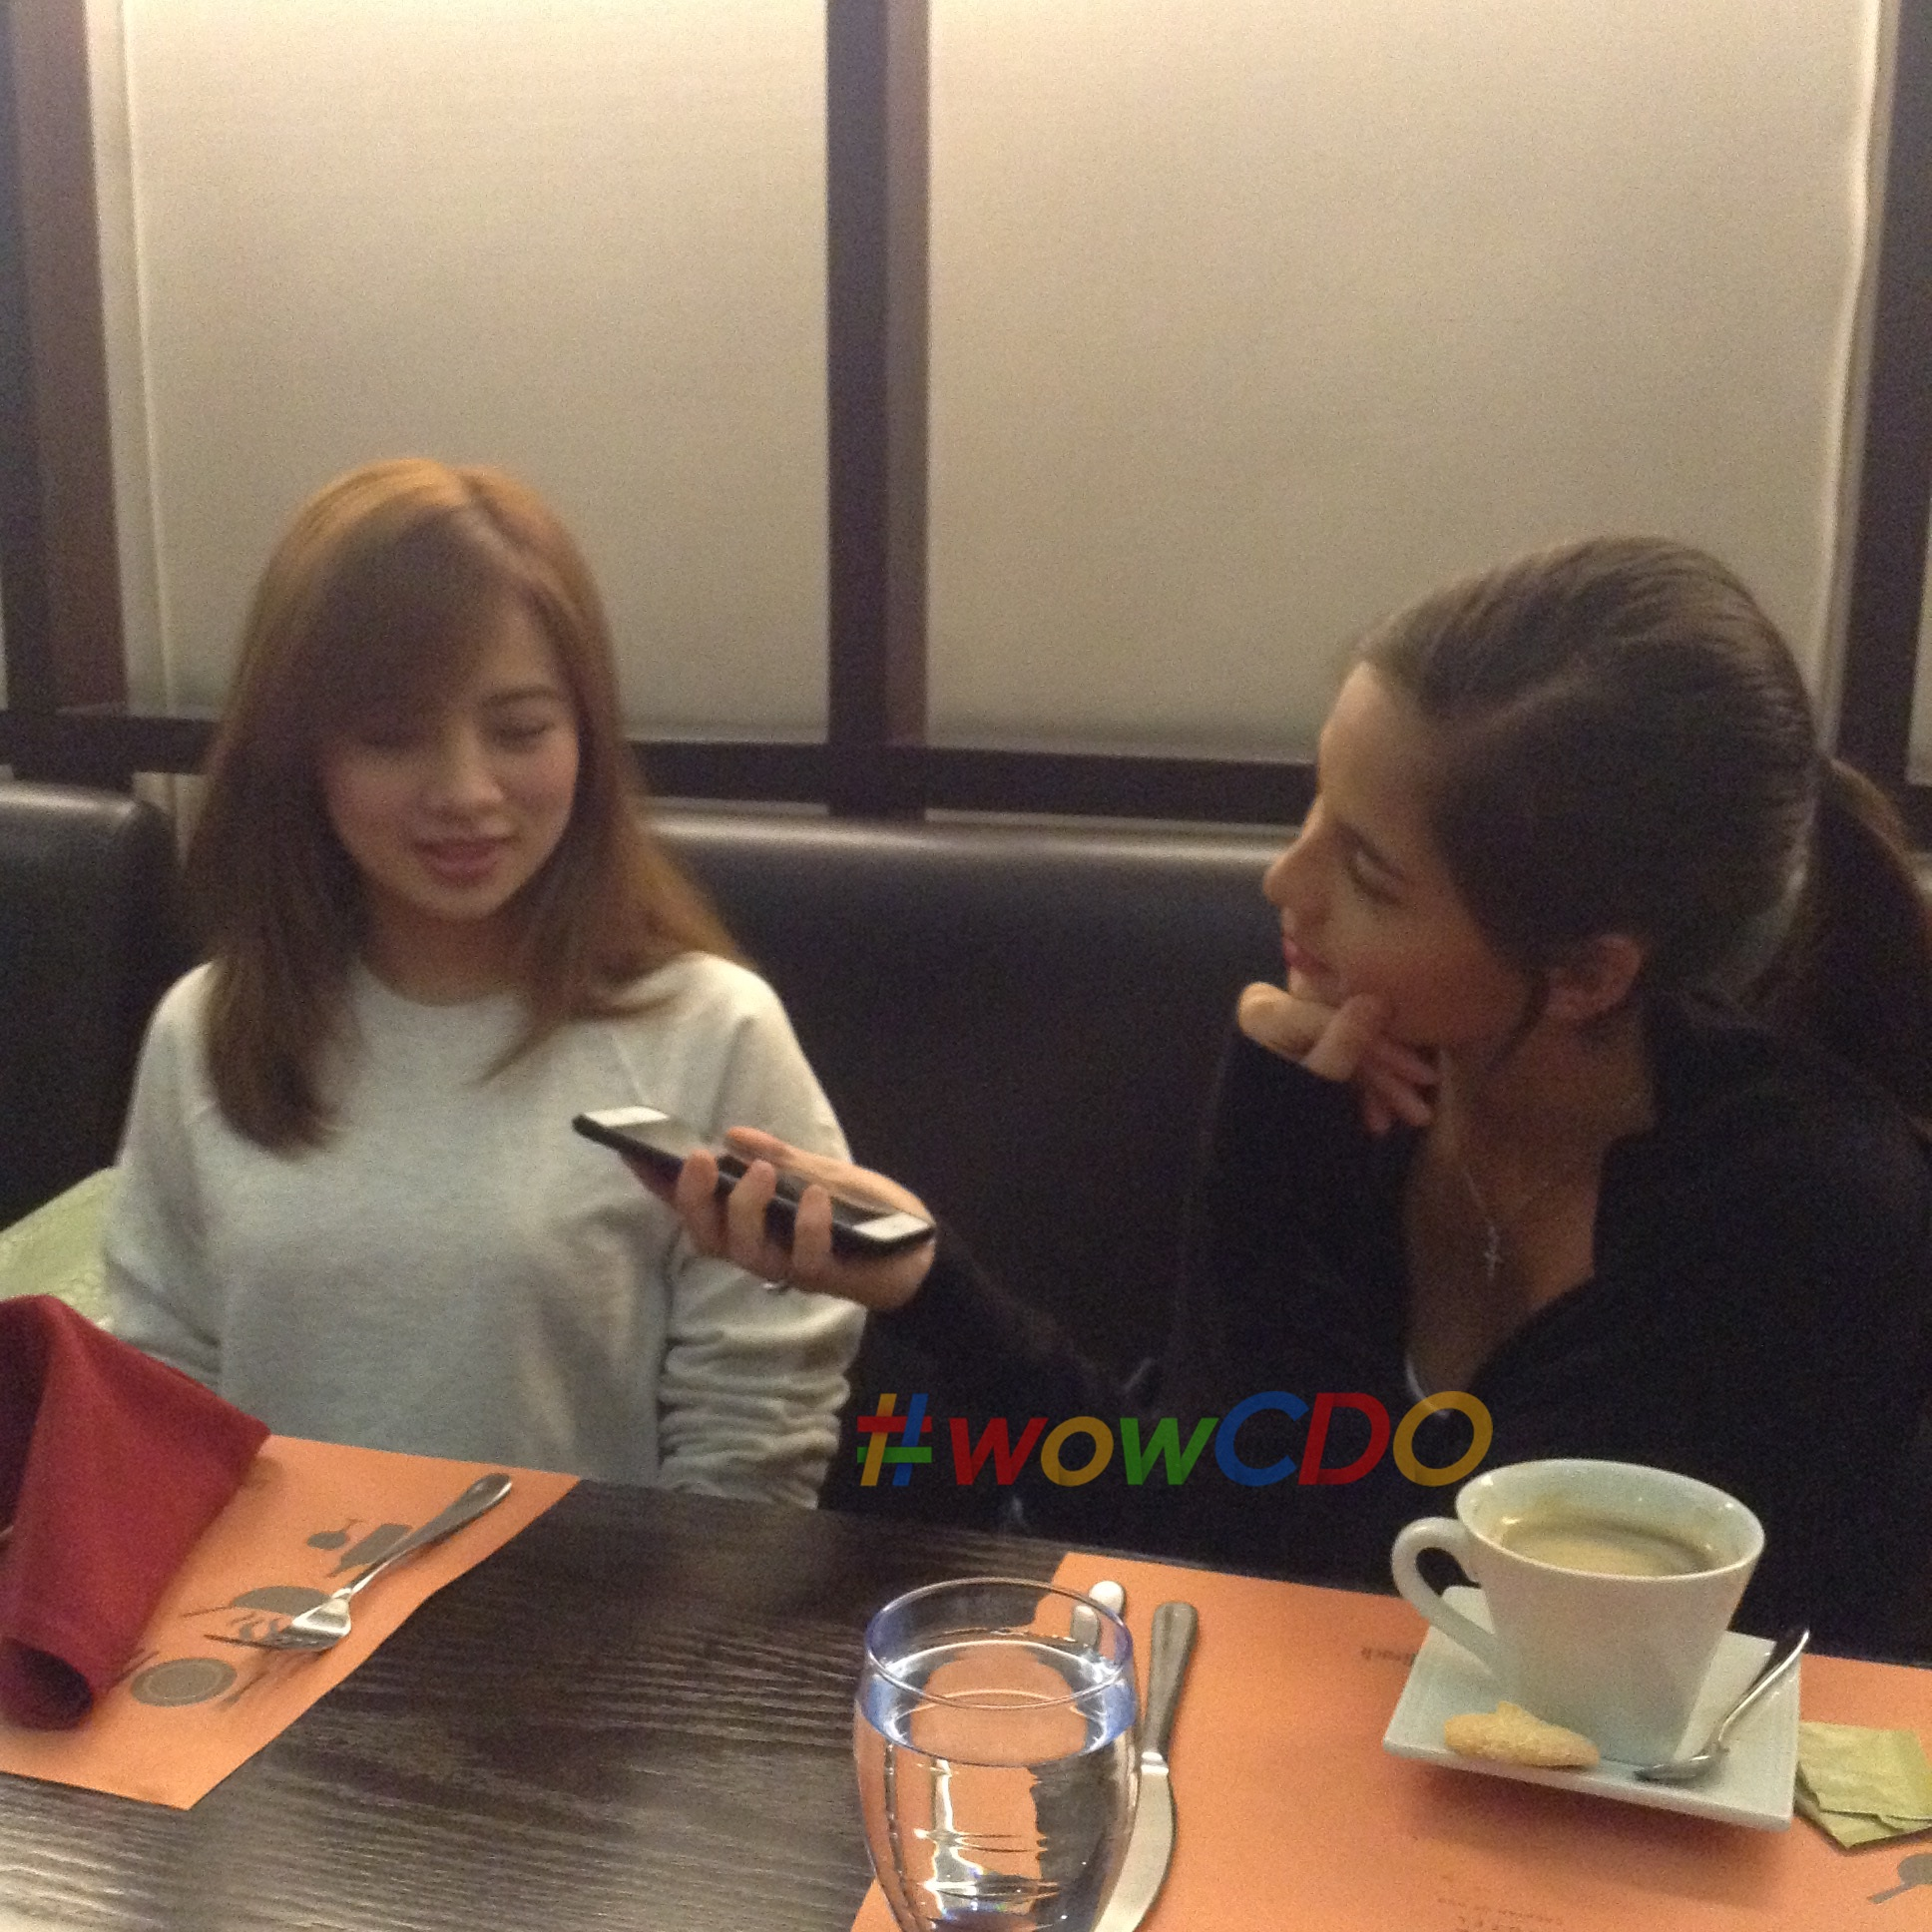 Jasmine acts as an interviewer when Ella Cruz arrived at the quick chit-chat.